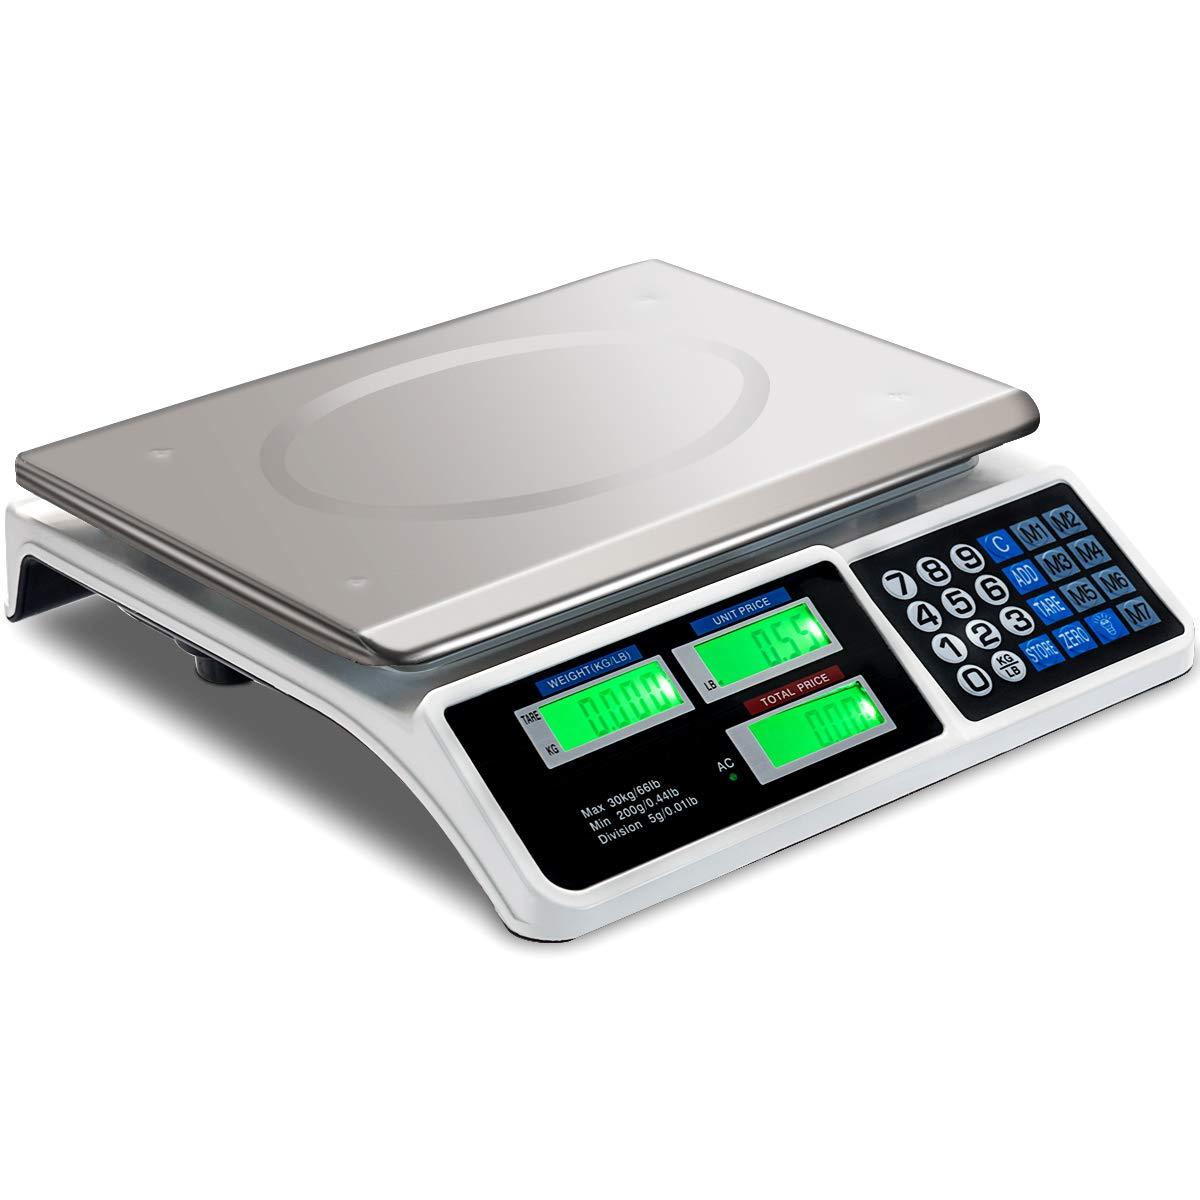 Goplus 66 LB Digital Scale Price Computing Deli Food Produce Electronic Counting Weight (Silver)